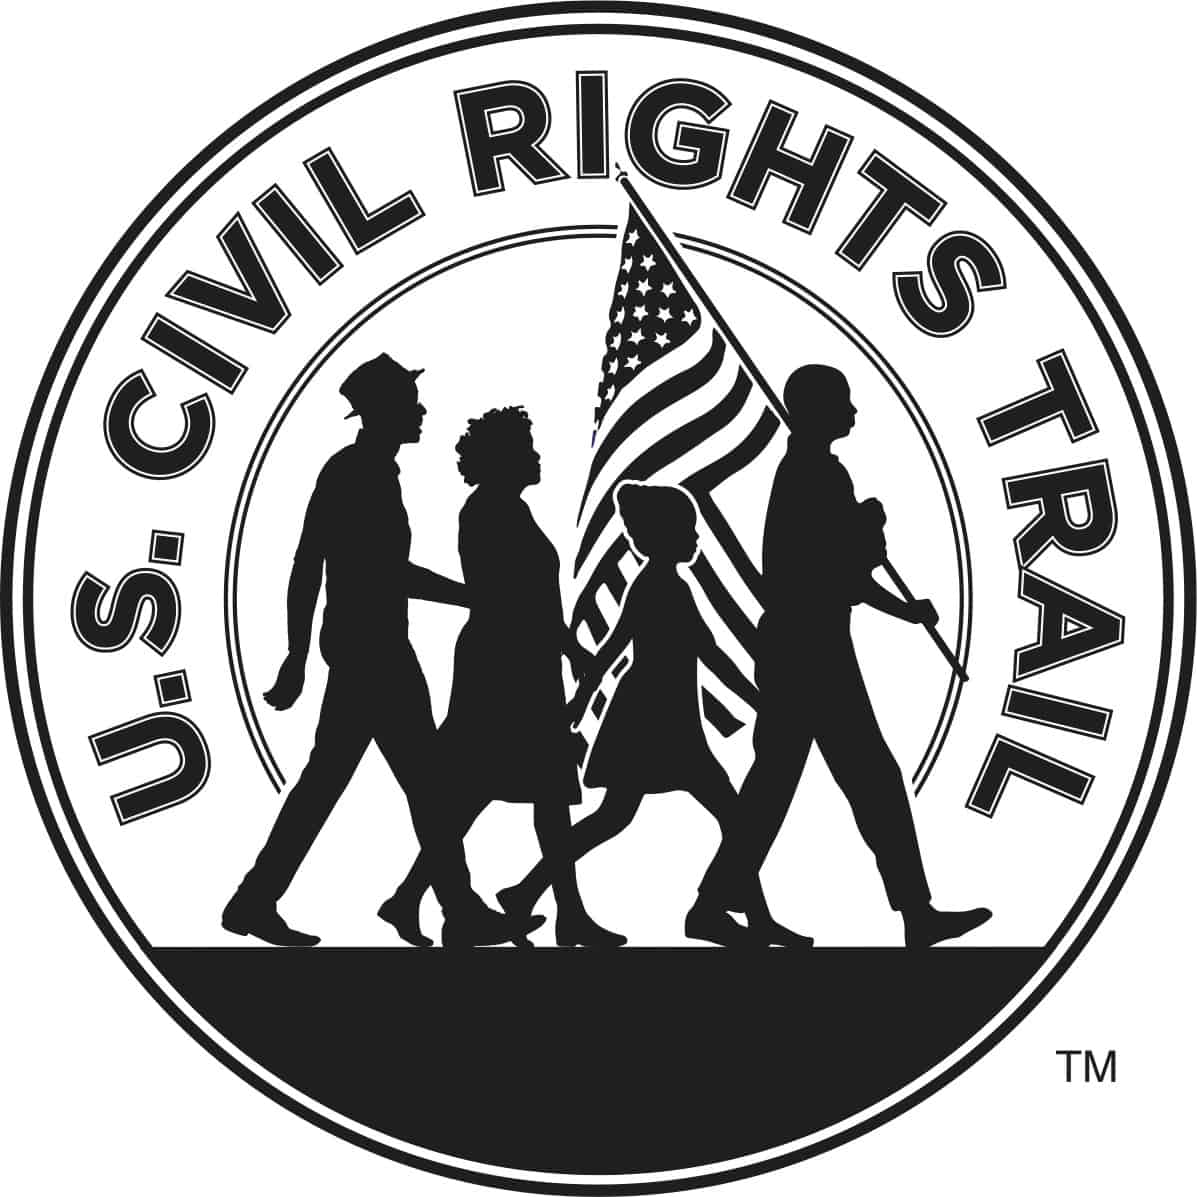 press us civil rights trail